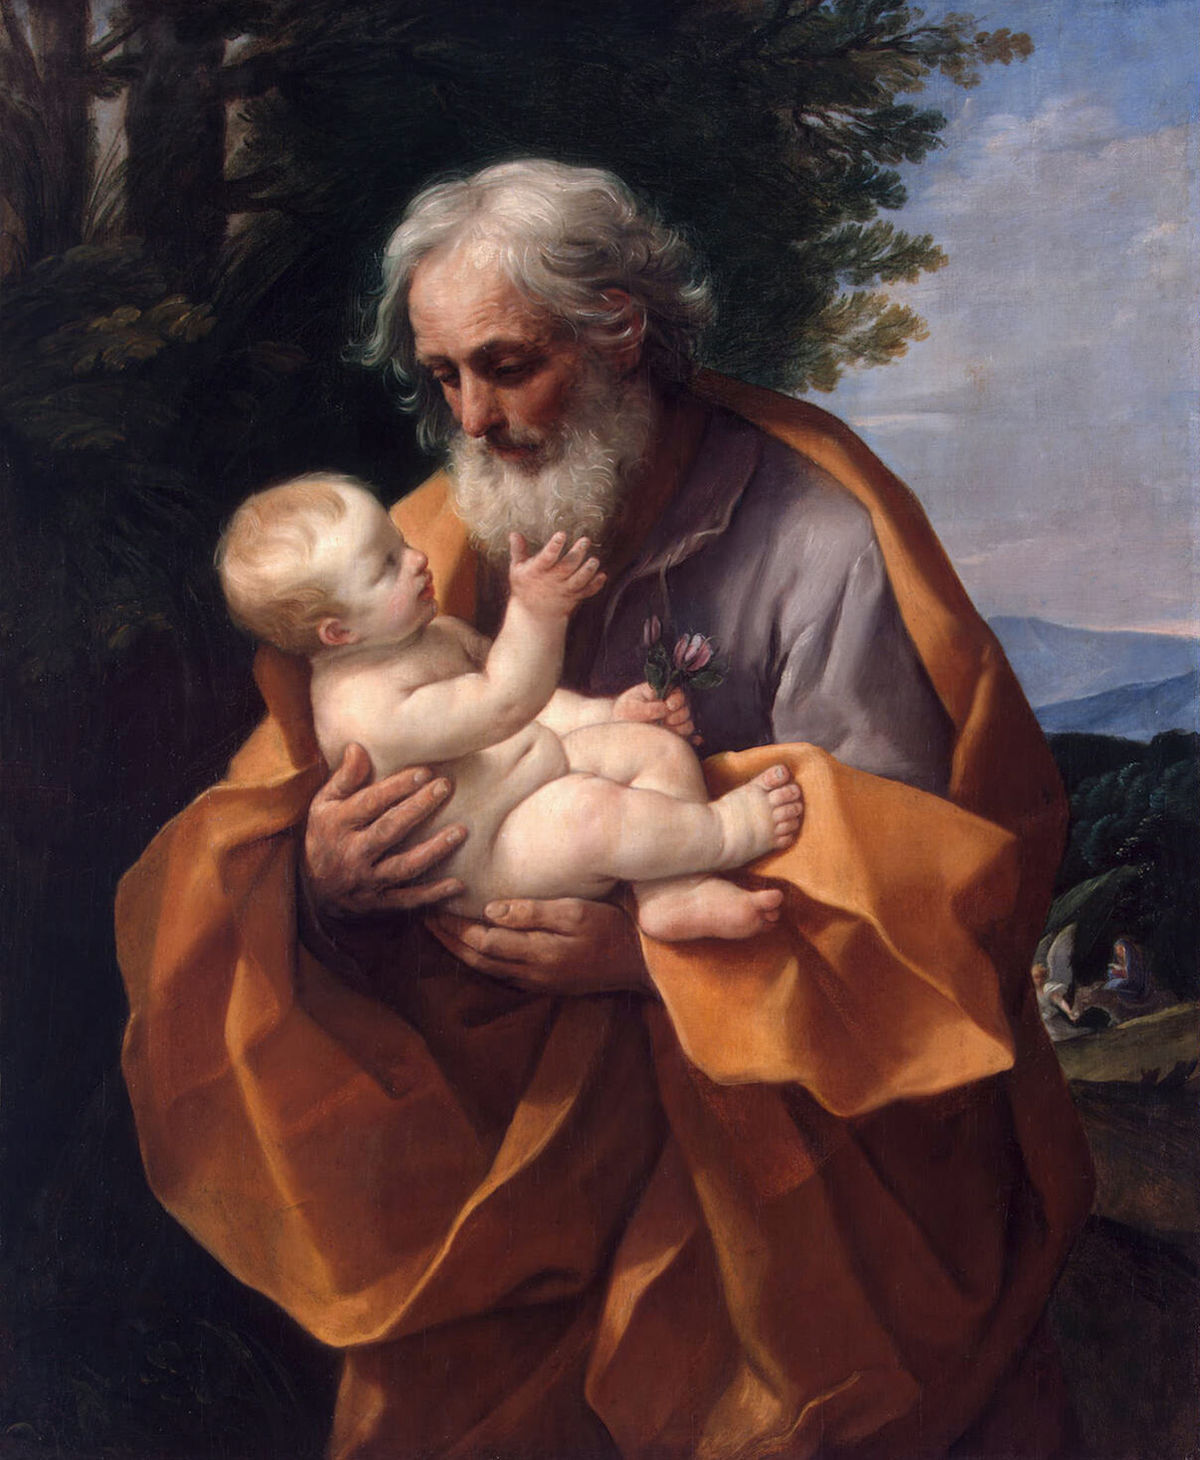 Saint_Joseph_with_the_Infant_Jesus_by_Guido_Reni,_c_1635